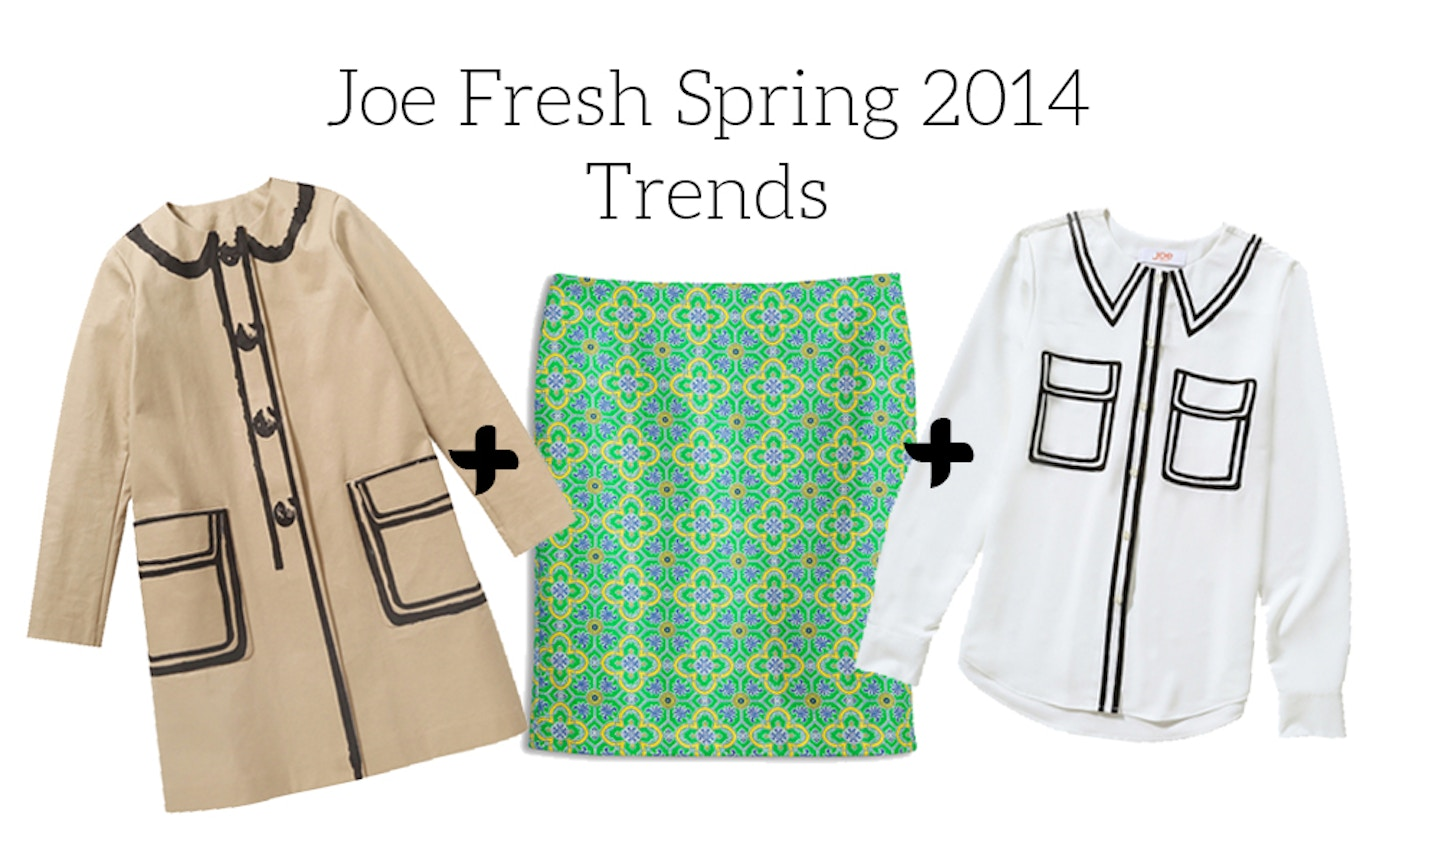 Joe Fresh Spring 2014 Trends + Outfit Ideas